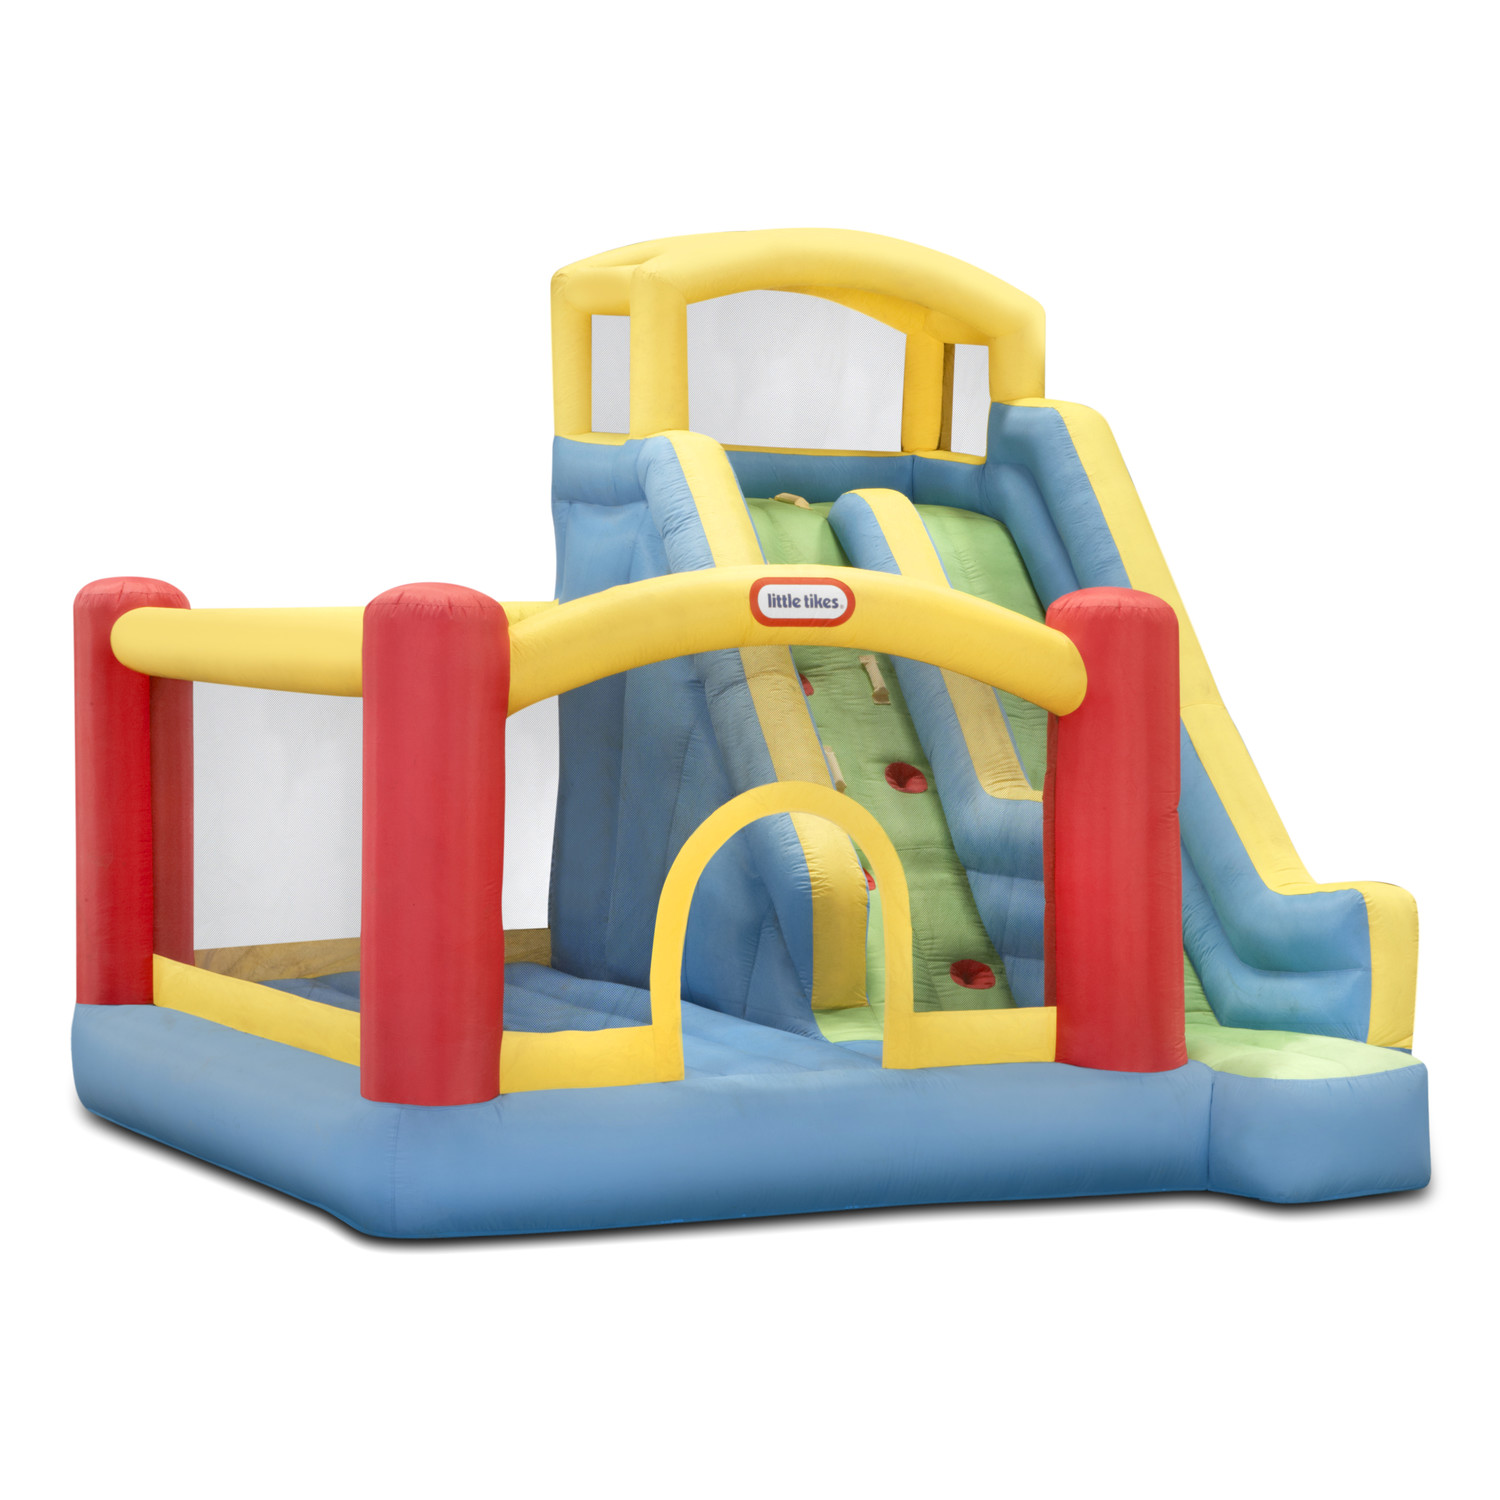 Awesome Little Tikes Bounce House Made Of Caoutchouc With Giant Slide For Play Yard Ideas